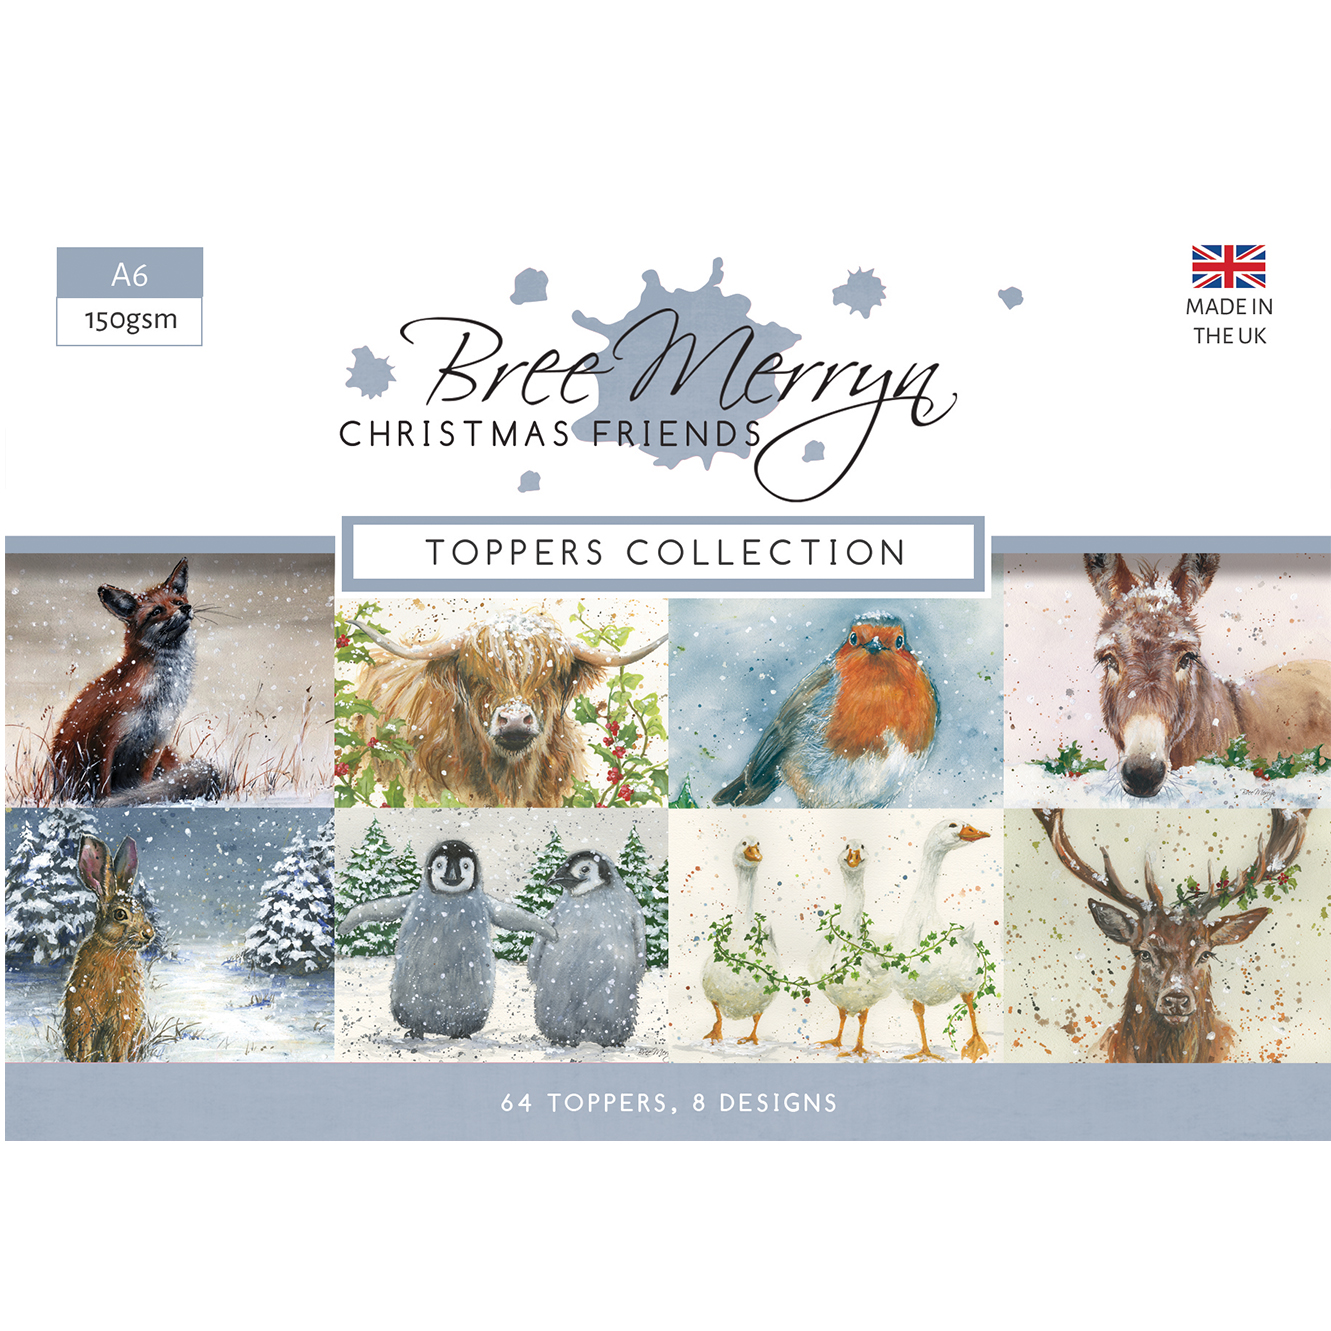 Bree Merryn Christmas Friends A6 Topper Collection